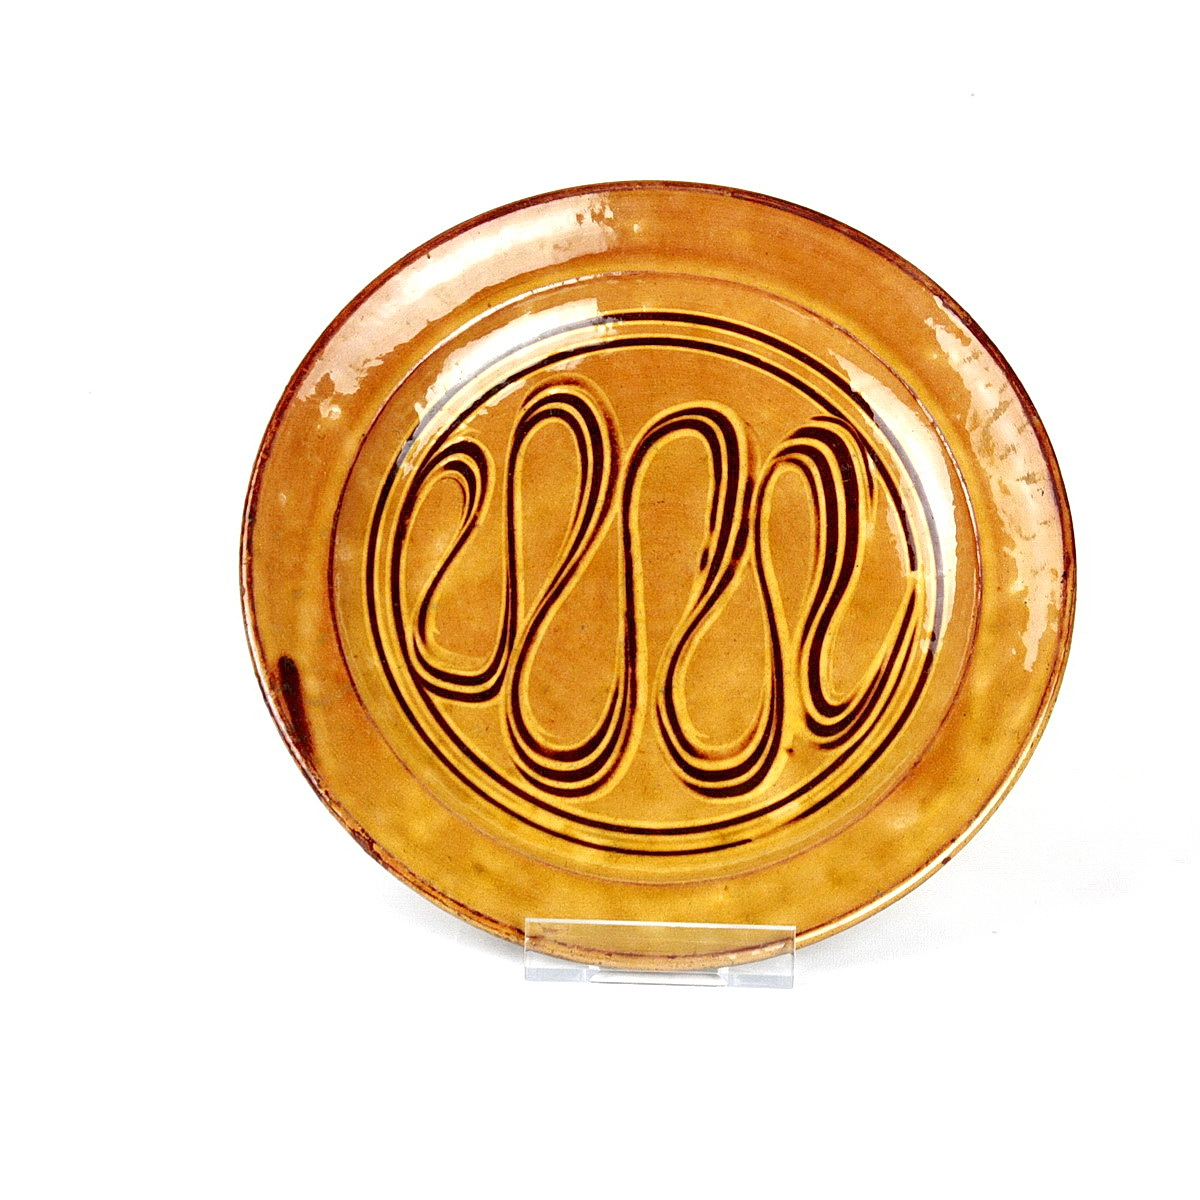 Michael Cardew earthenware slipware dish. Yellow glaze with wavy sgrafitto pattern to well